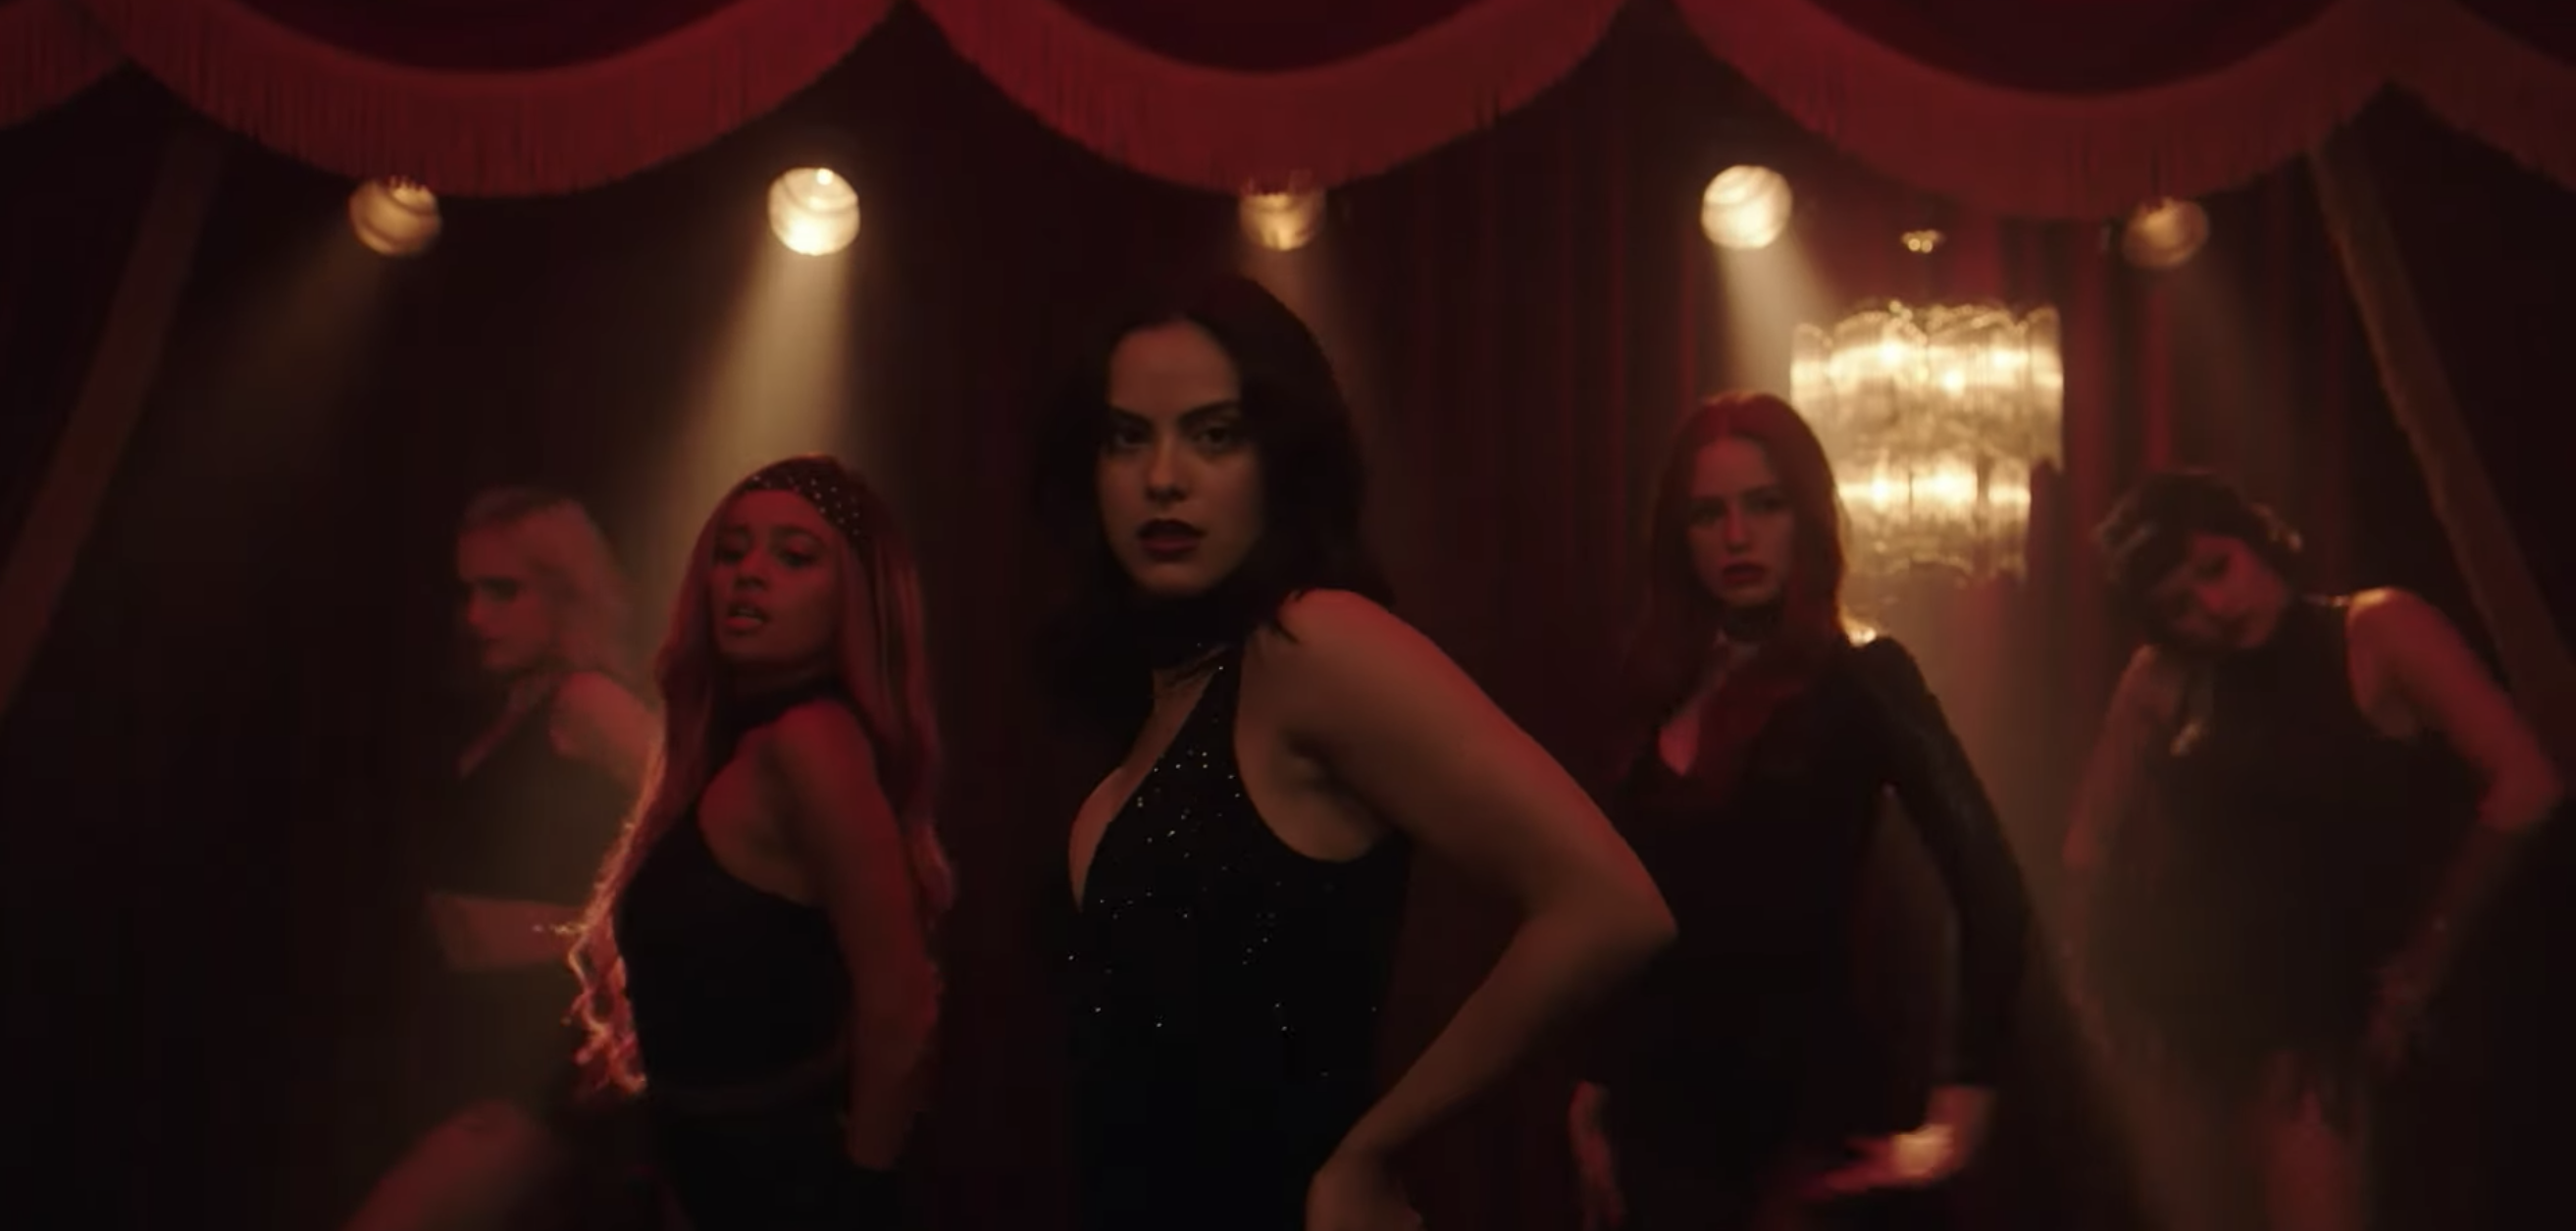 Watch Veronica Lodge Take on Fosse With 'All That Jazz' on Riverdale